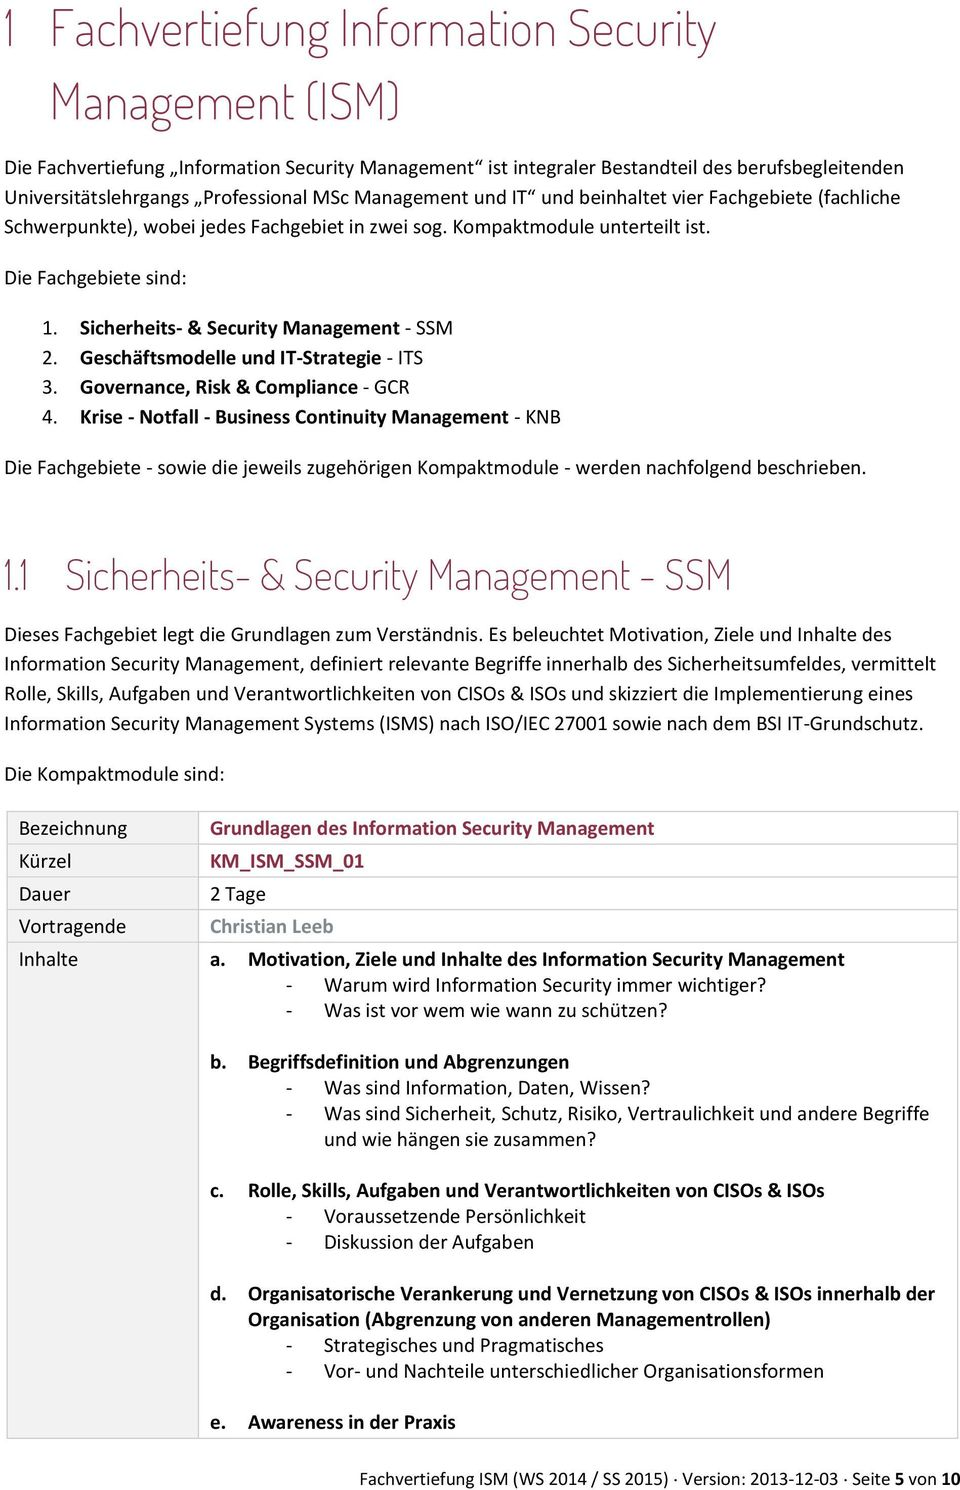 Sicherheits- & Security Management - SSM 2. Geschäftsmodelle und IT-Strategie - ITS 3. Governance, Risk & Compliance - GCR 4.